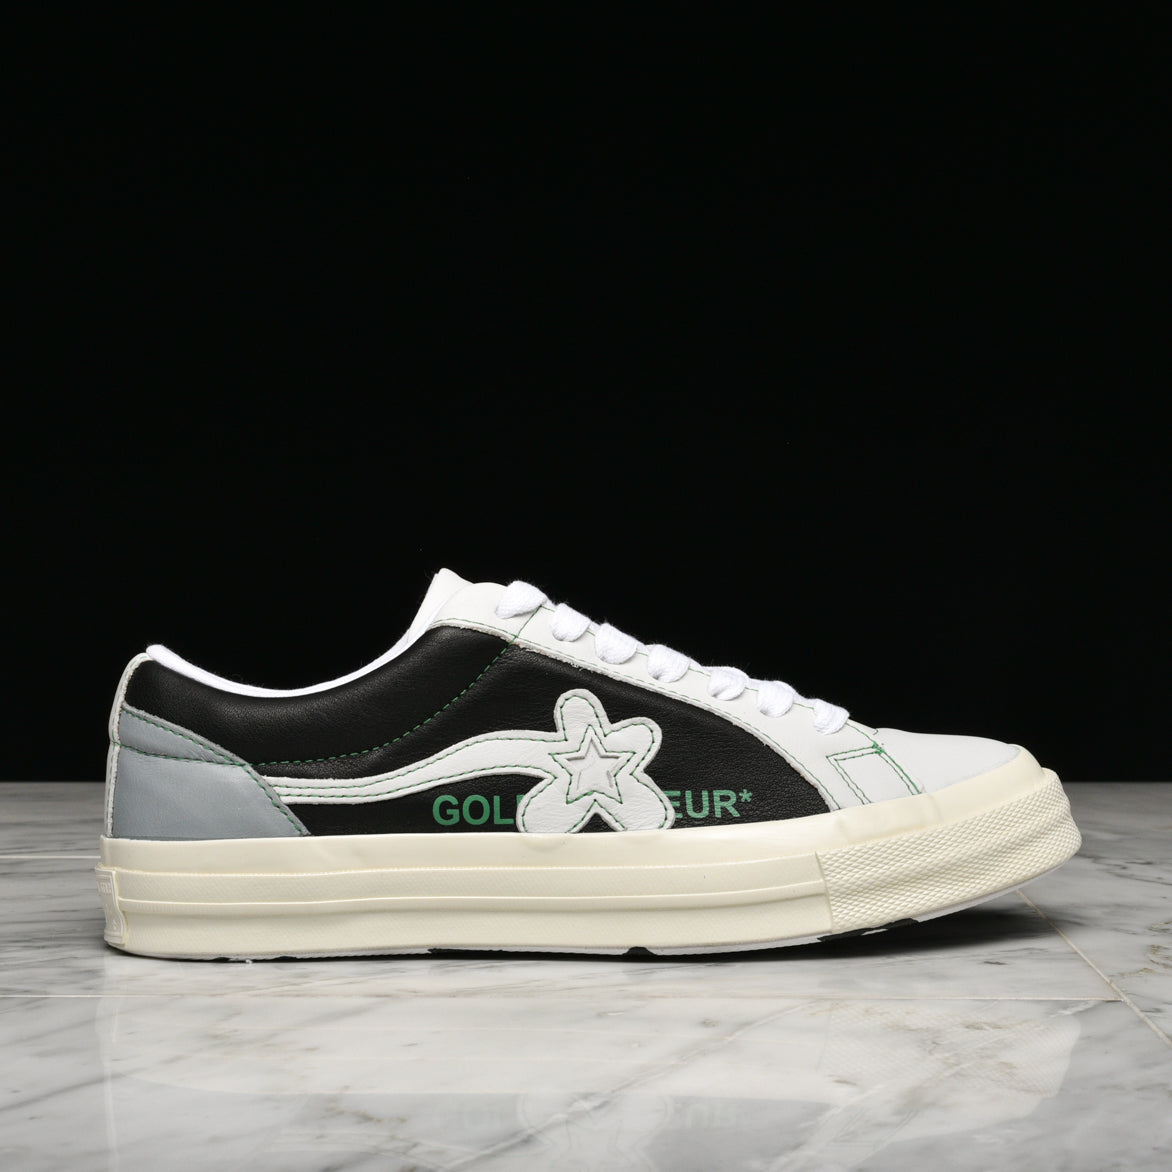 Golf Le Fleur X Converse One Star Ox Two Tone Barely Blue Black Lapstoneandhammer Com